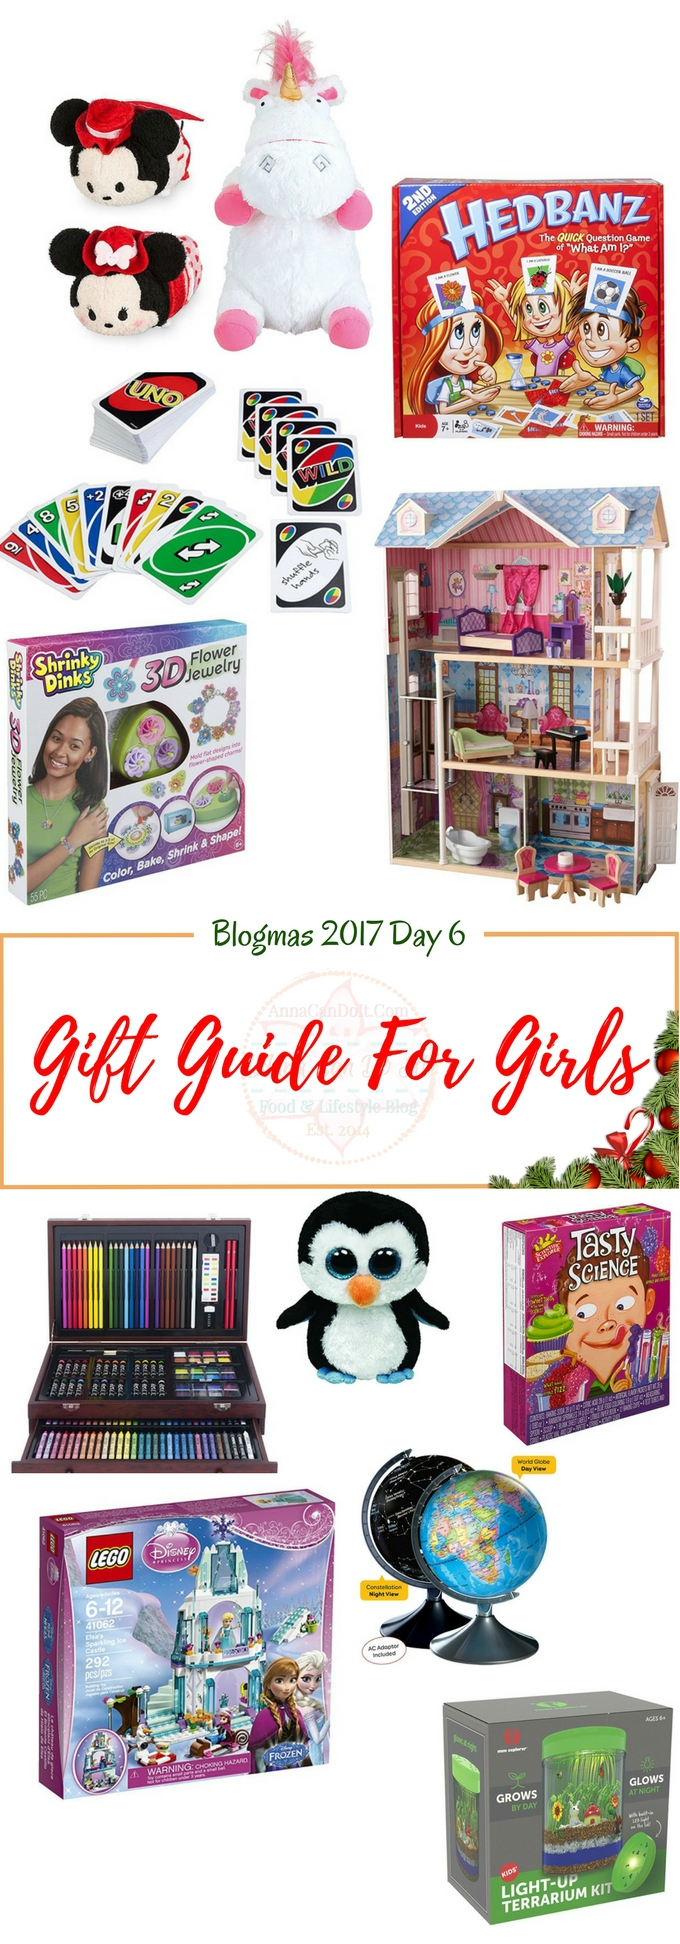 Gift Guide For Girls - Blogmas 2017 Day 6 - Anna Can Do It!